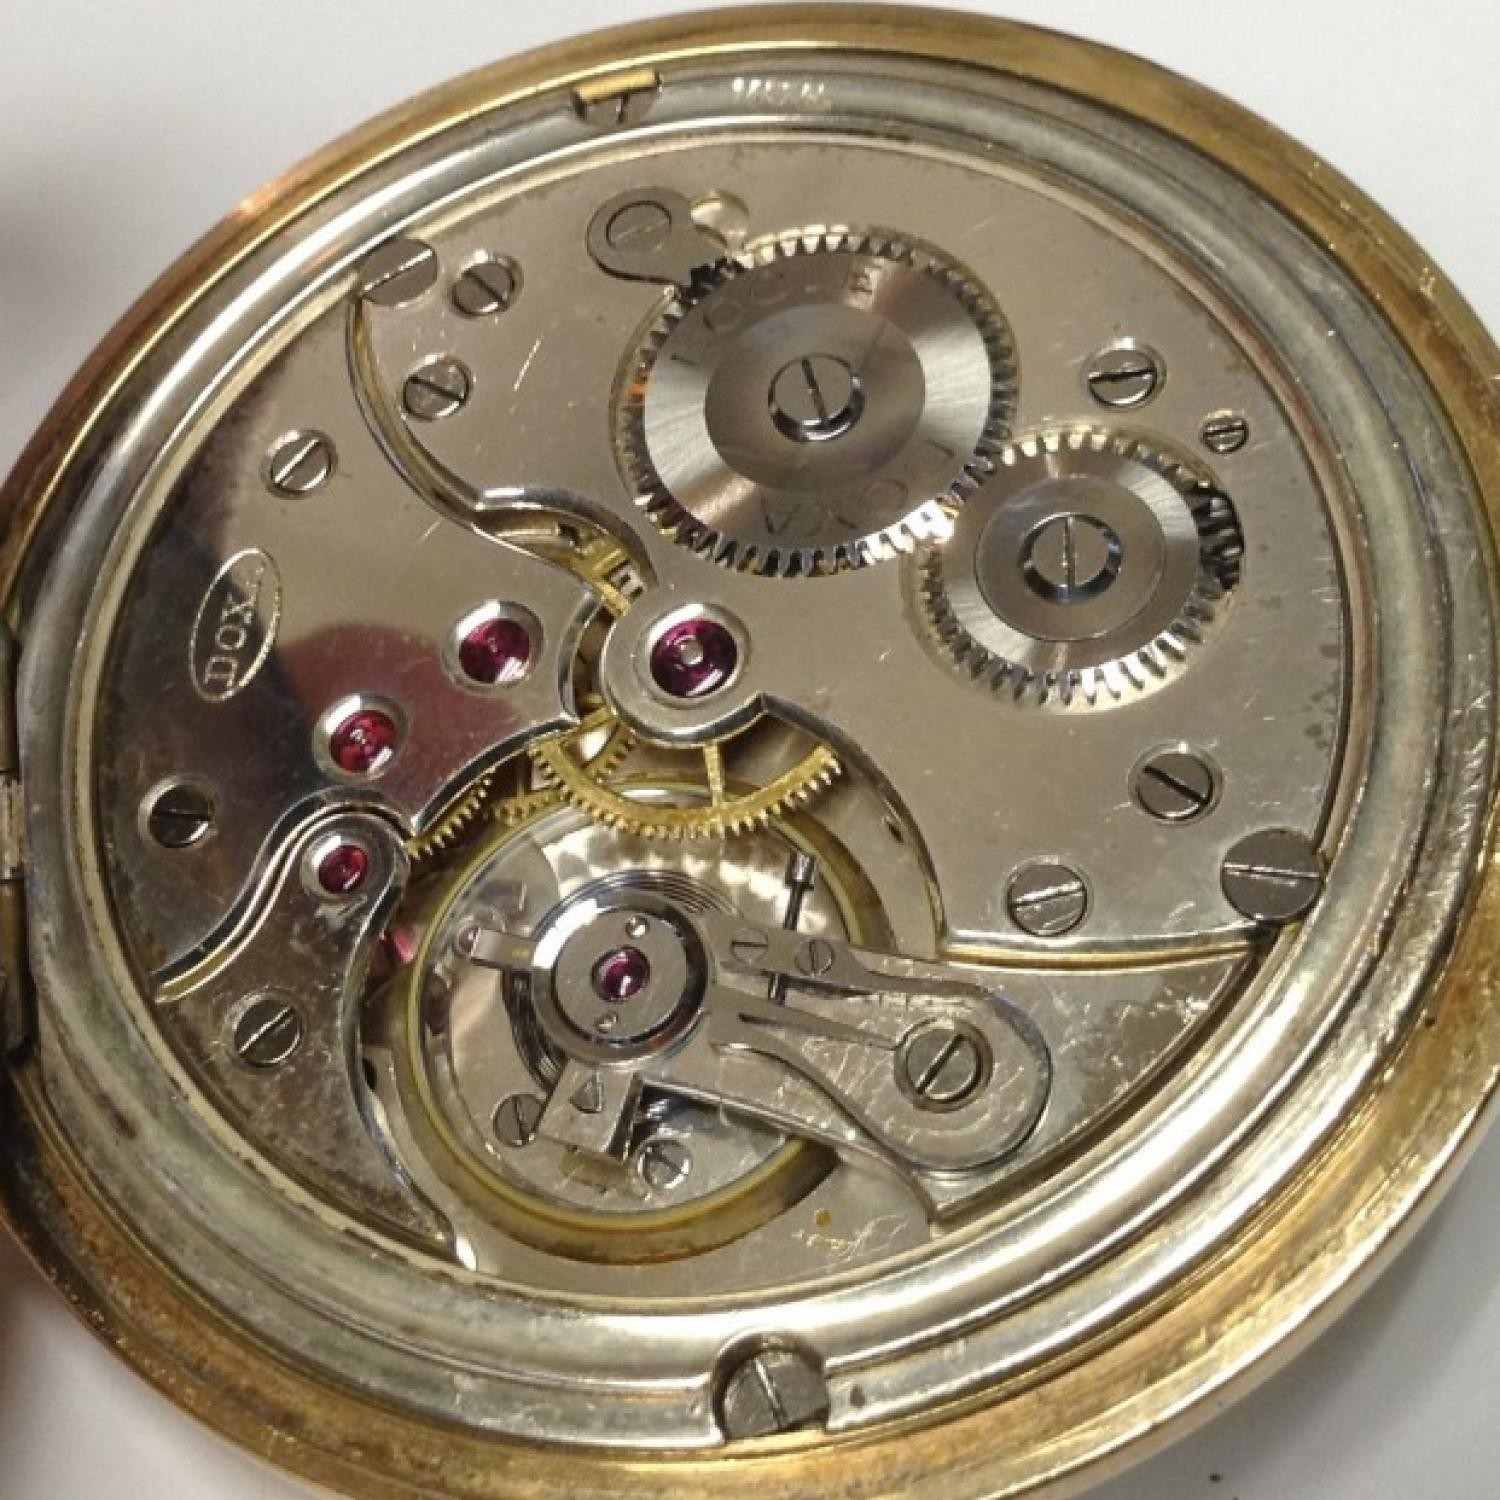 Image of Other DOXA #159607 Movement